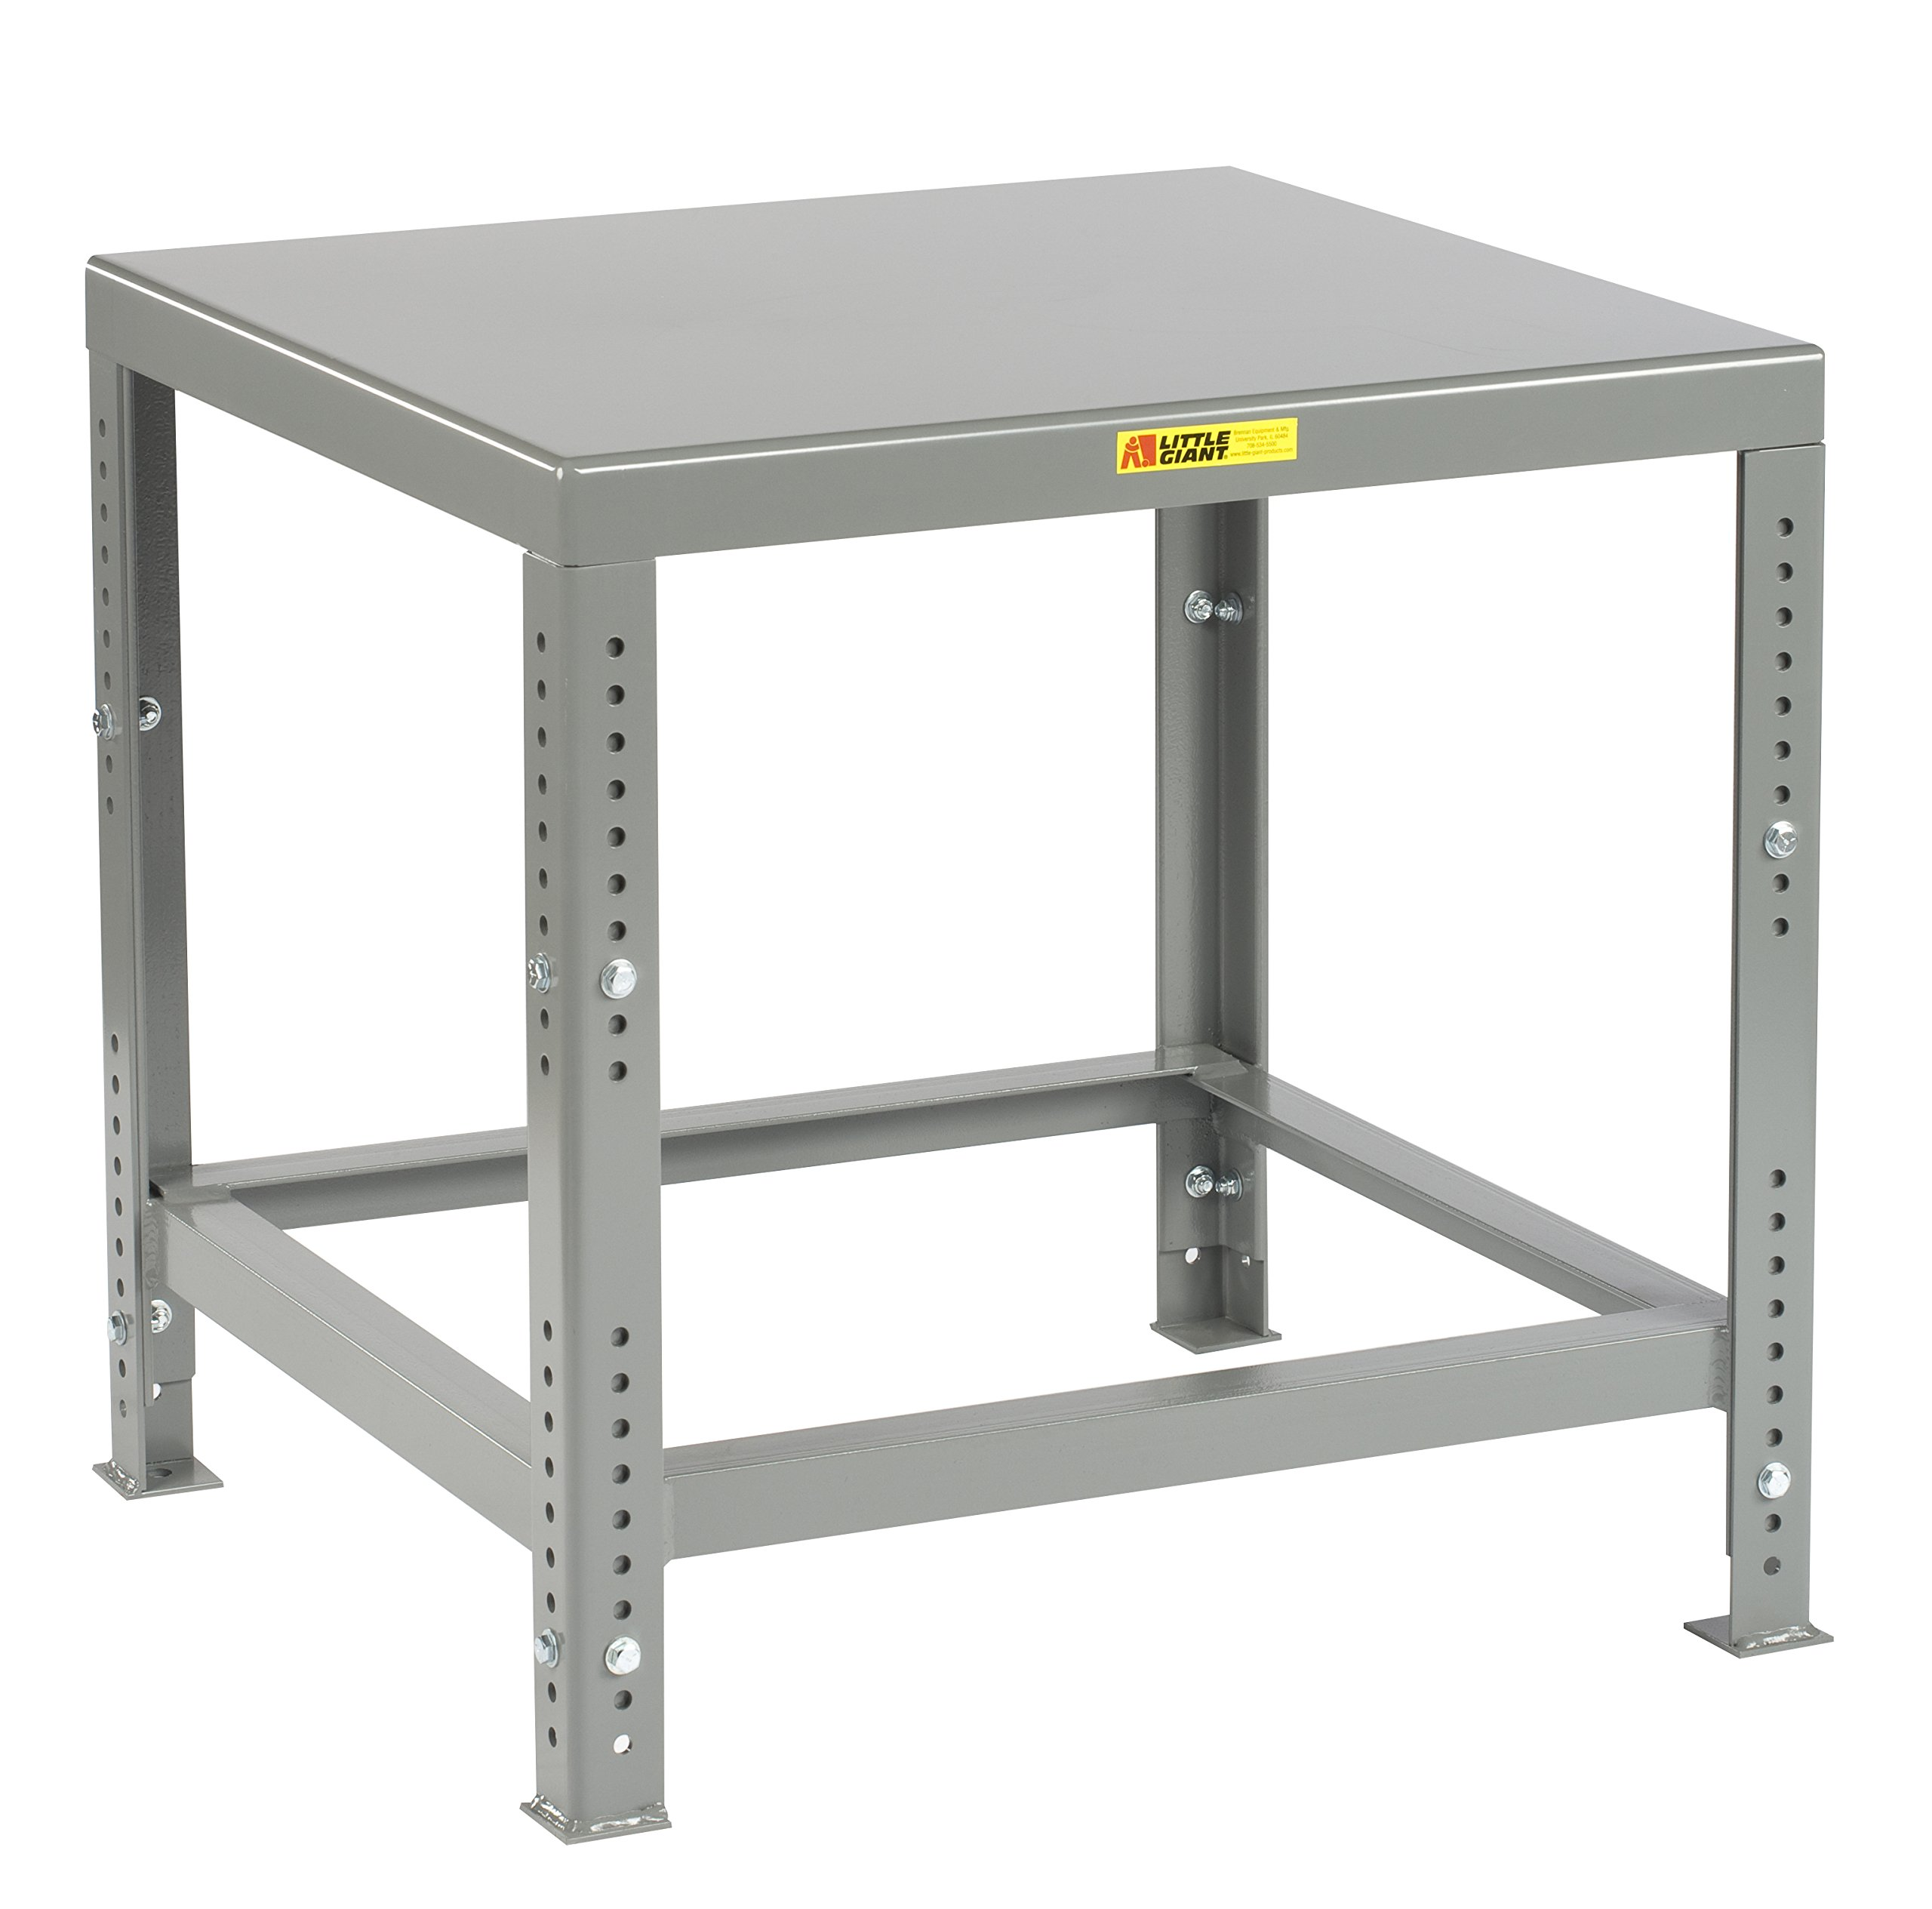 Little Giant MTH1-2830-AH Welded Steel Adjustable Height Machine Table, 10,000 lb. Load Capacity, 30'' to 37'' Adjustable Height, 30'' x 28'', Gray